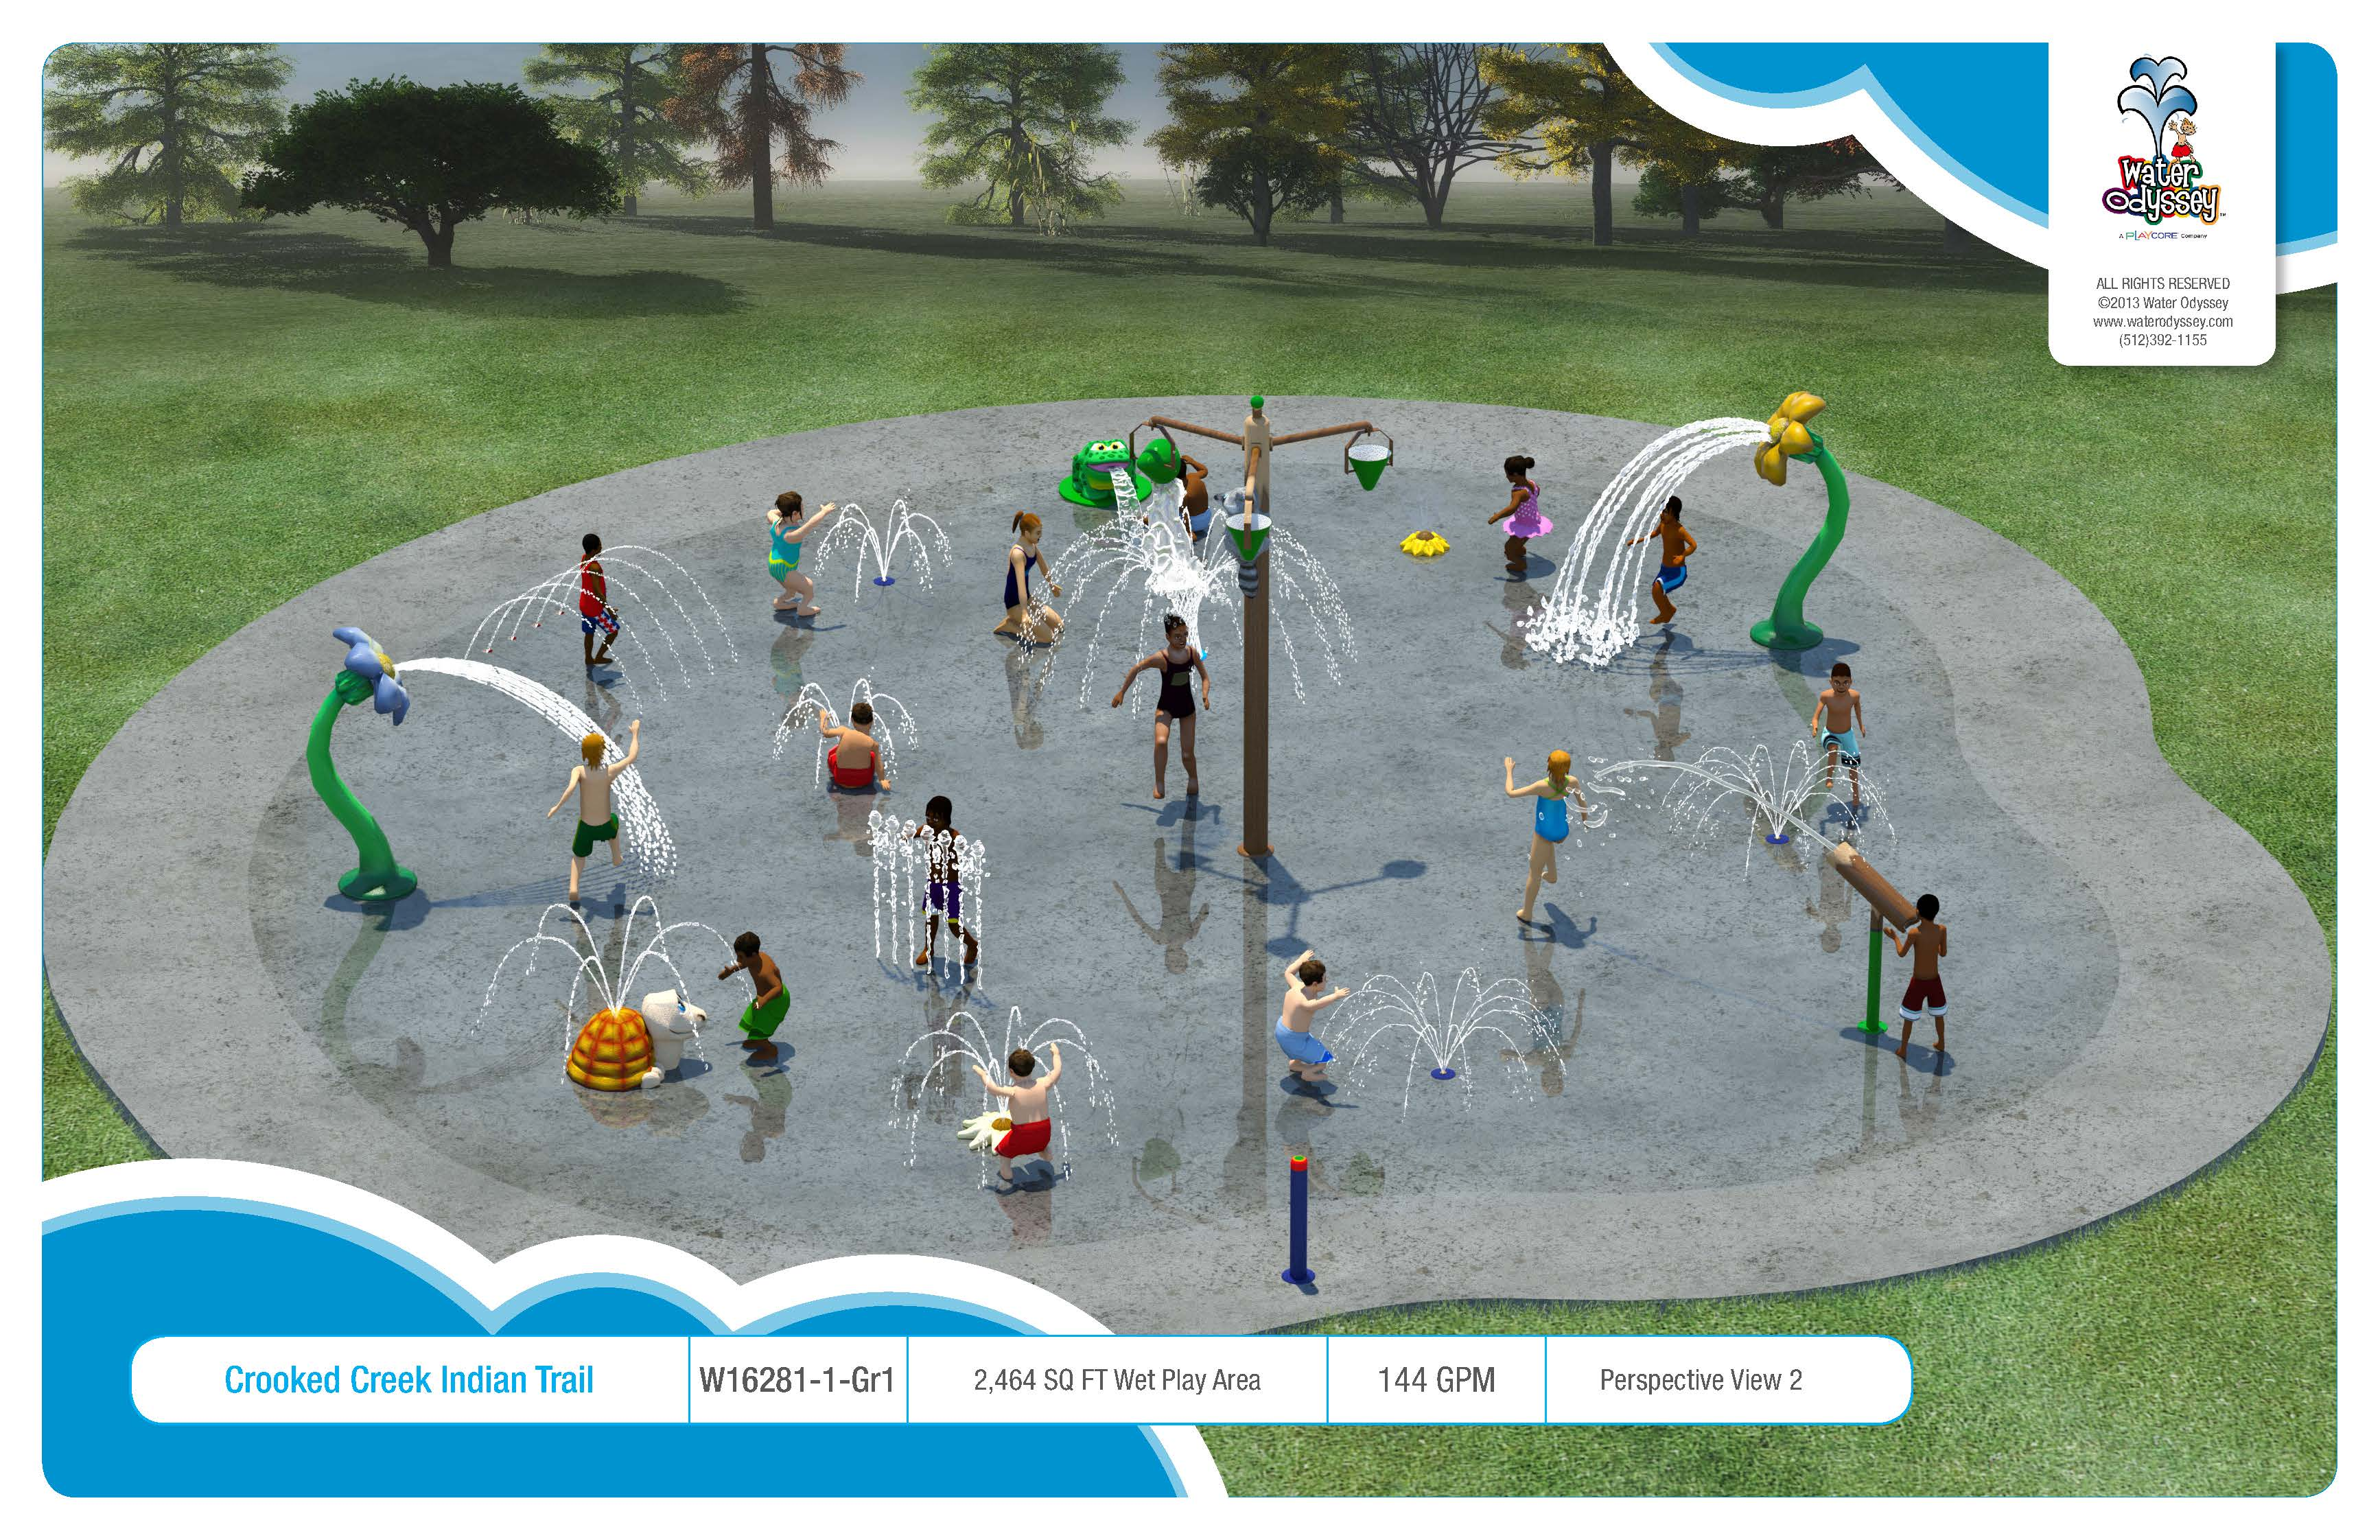 A rendering of the Crooked Creek Park Splashpad